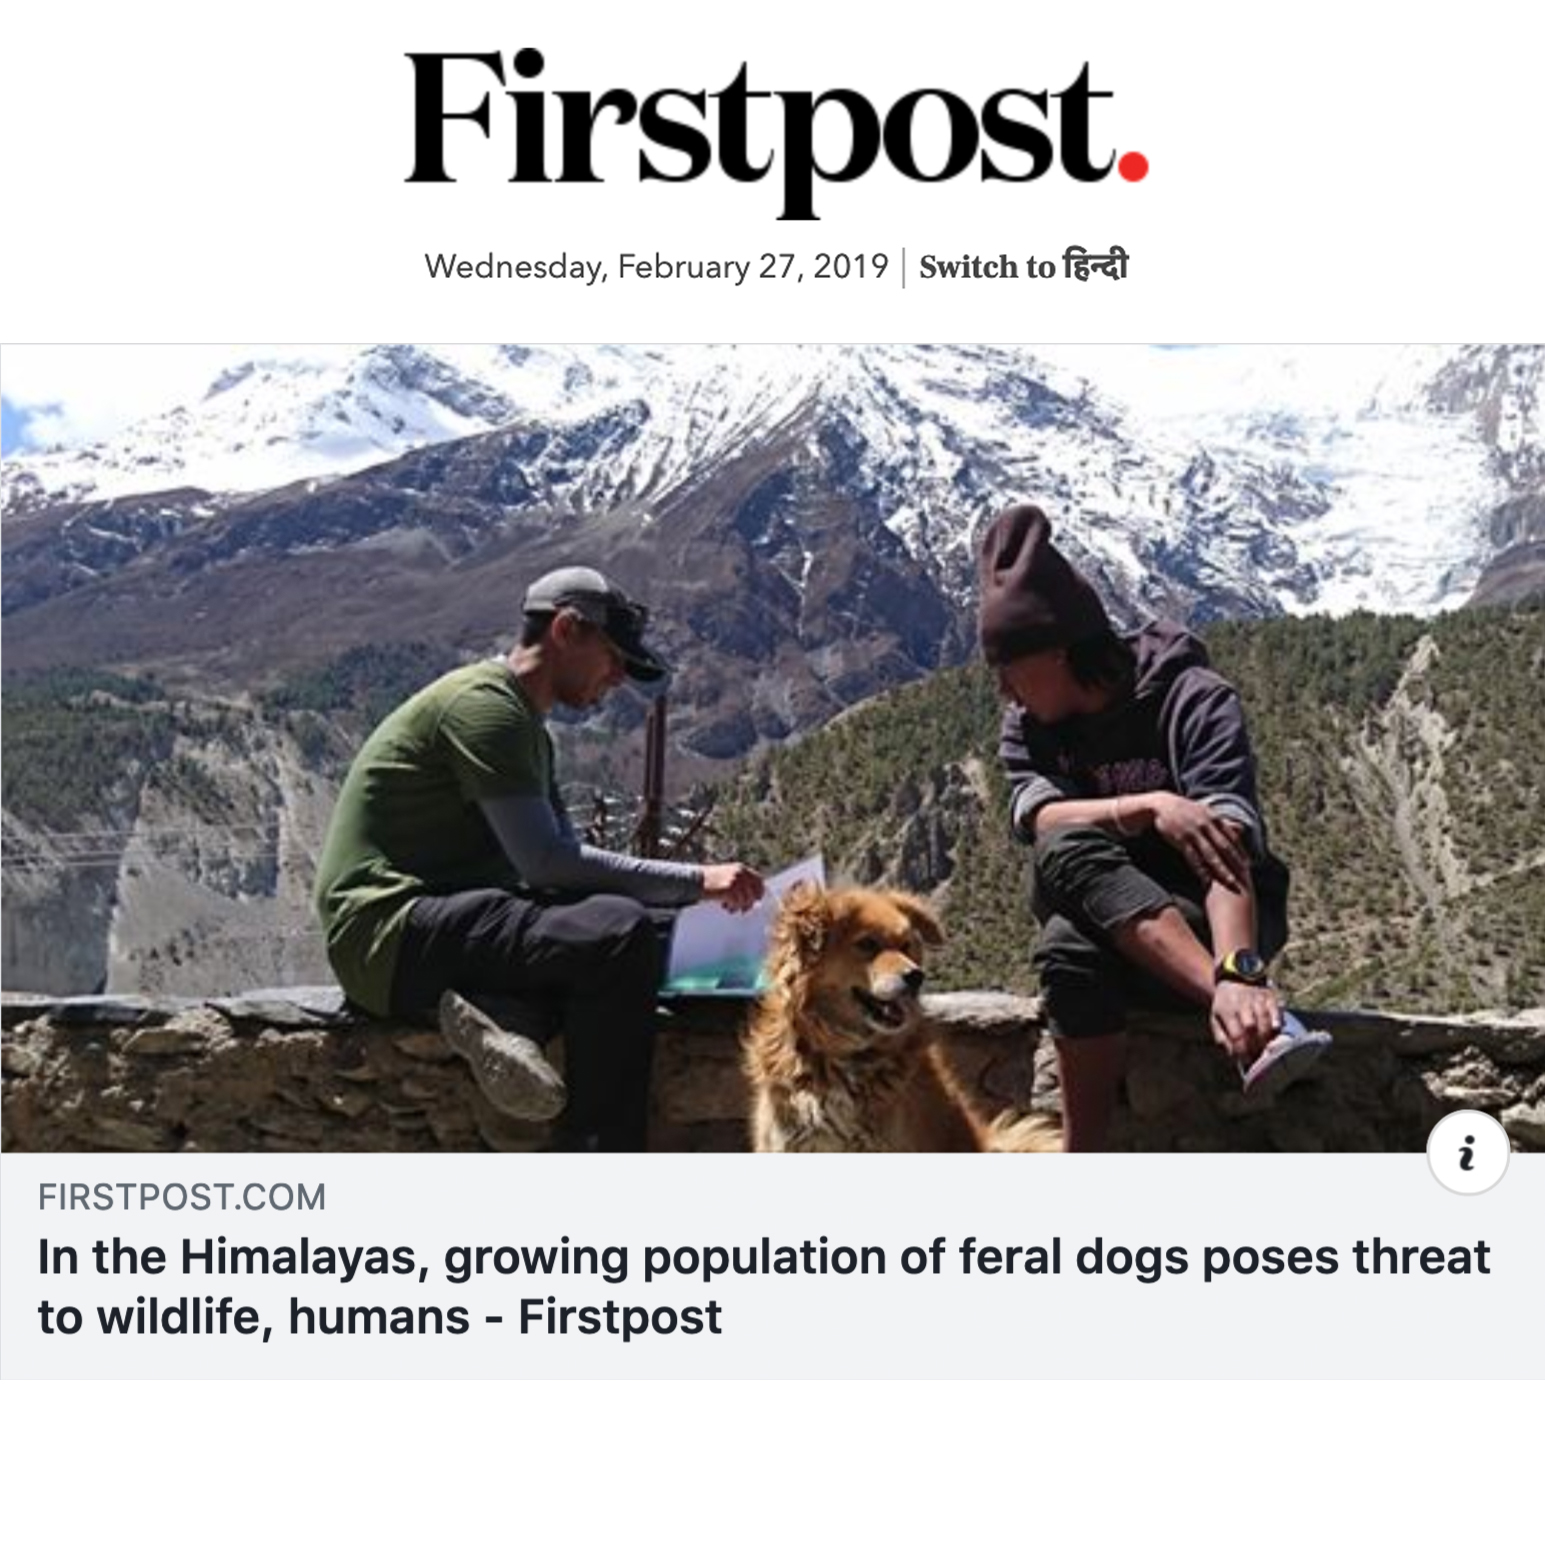 Firstpost, 27 Feb 2019